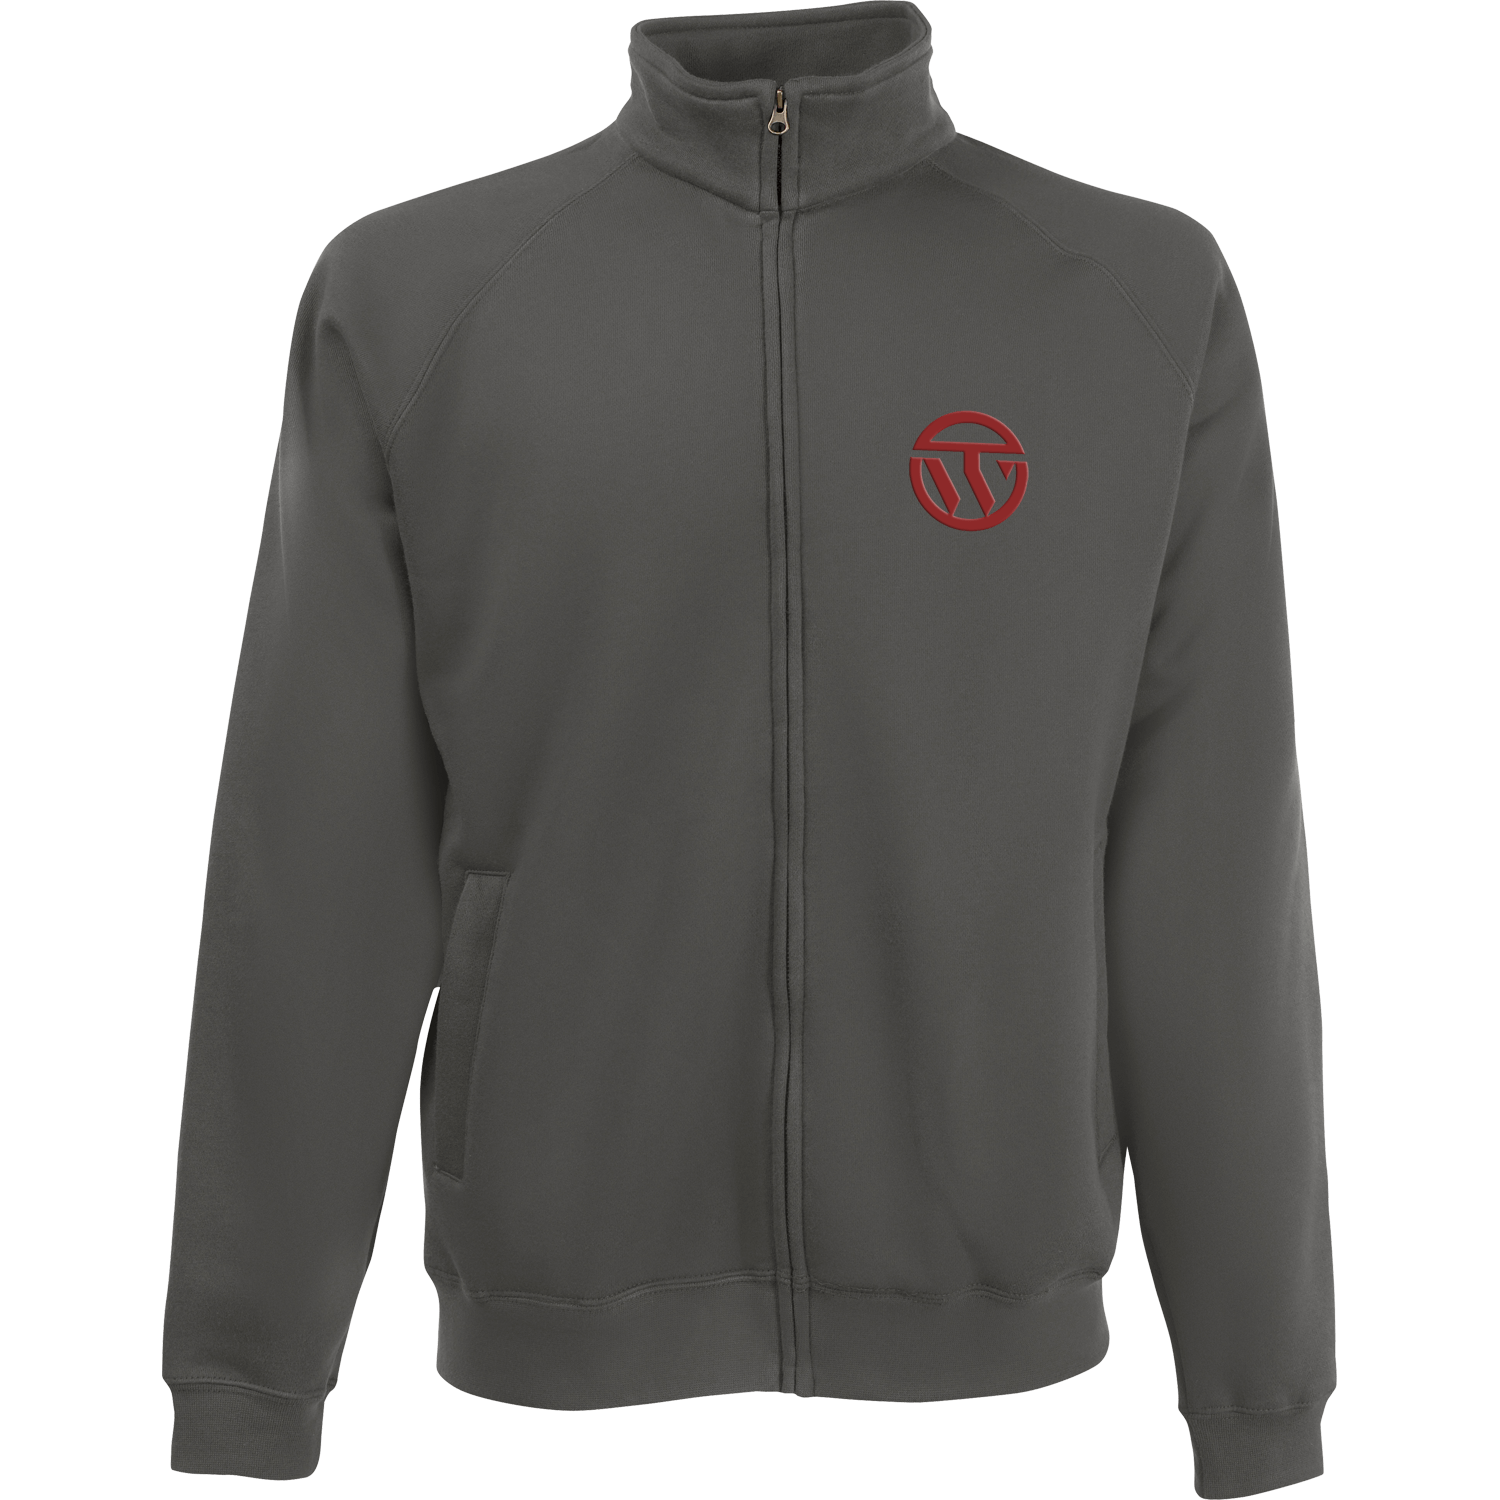 Fruit of the Loom Embroidered Full Zip Sweat Jacket